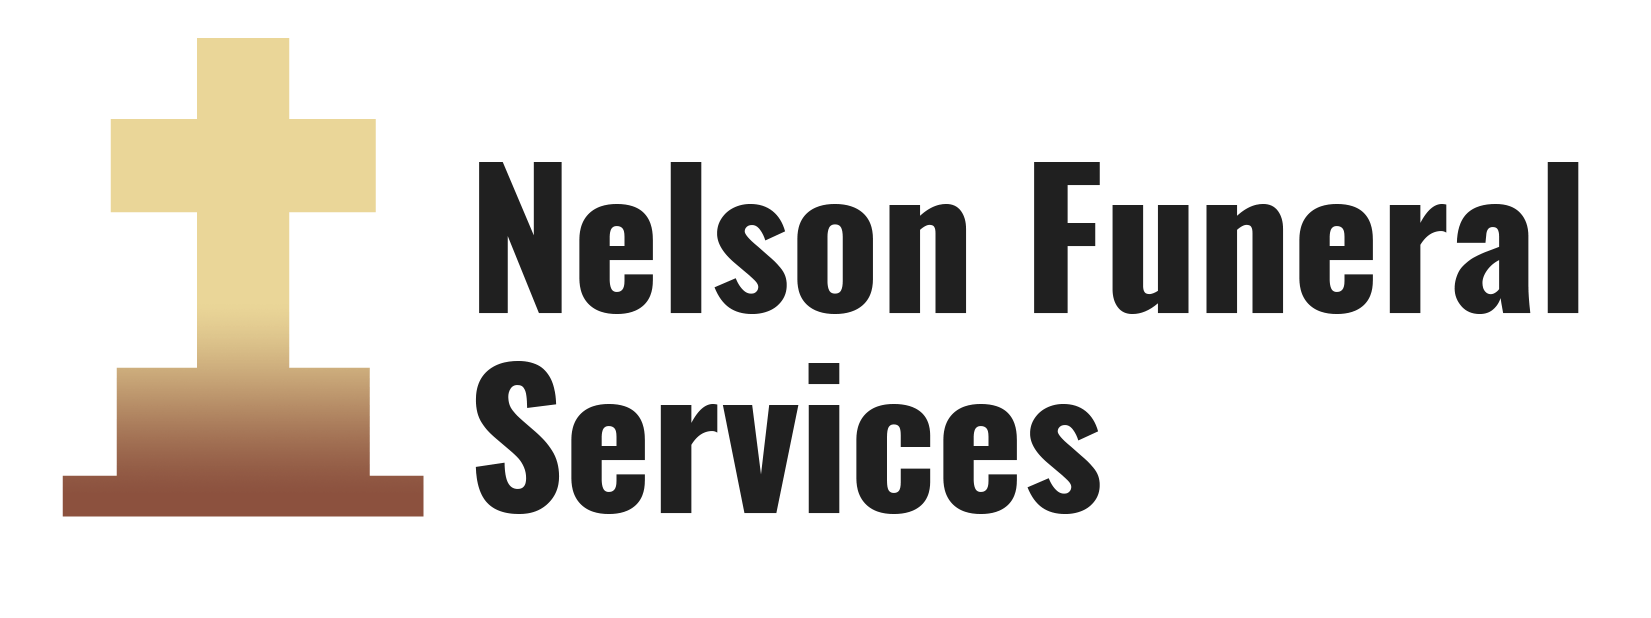 Nelson Funeral Services